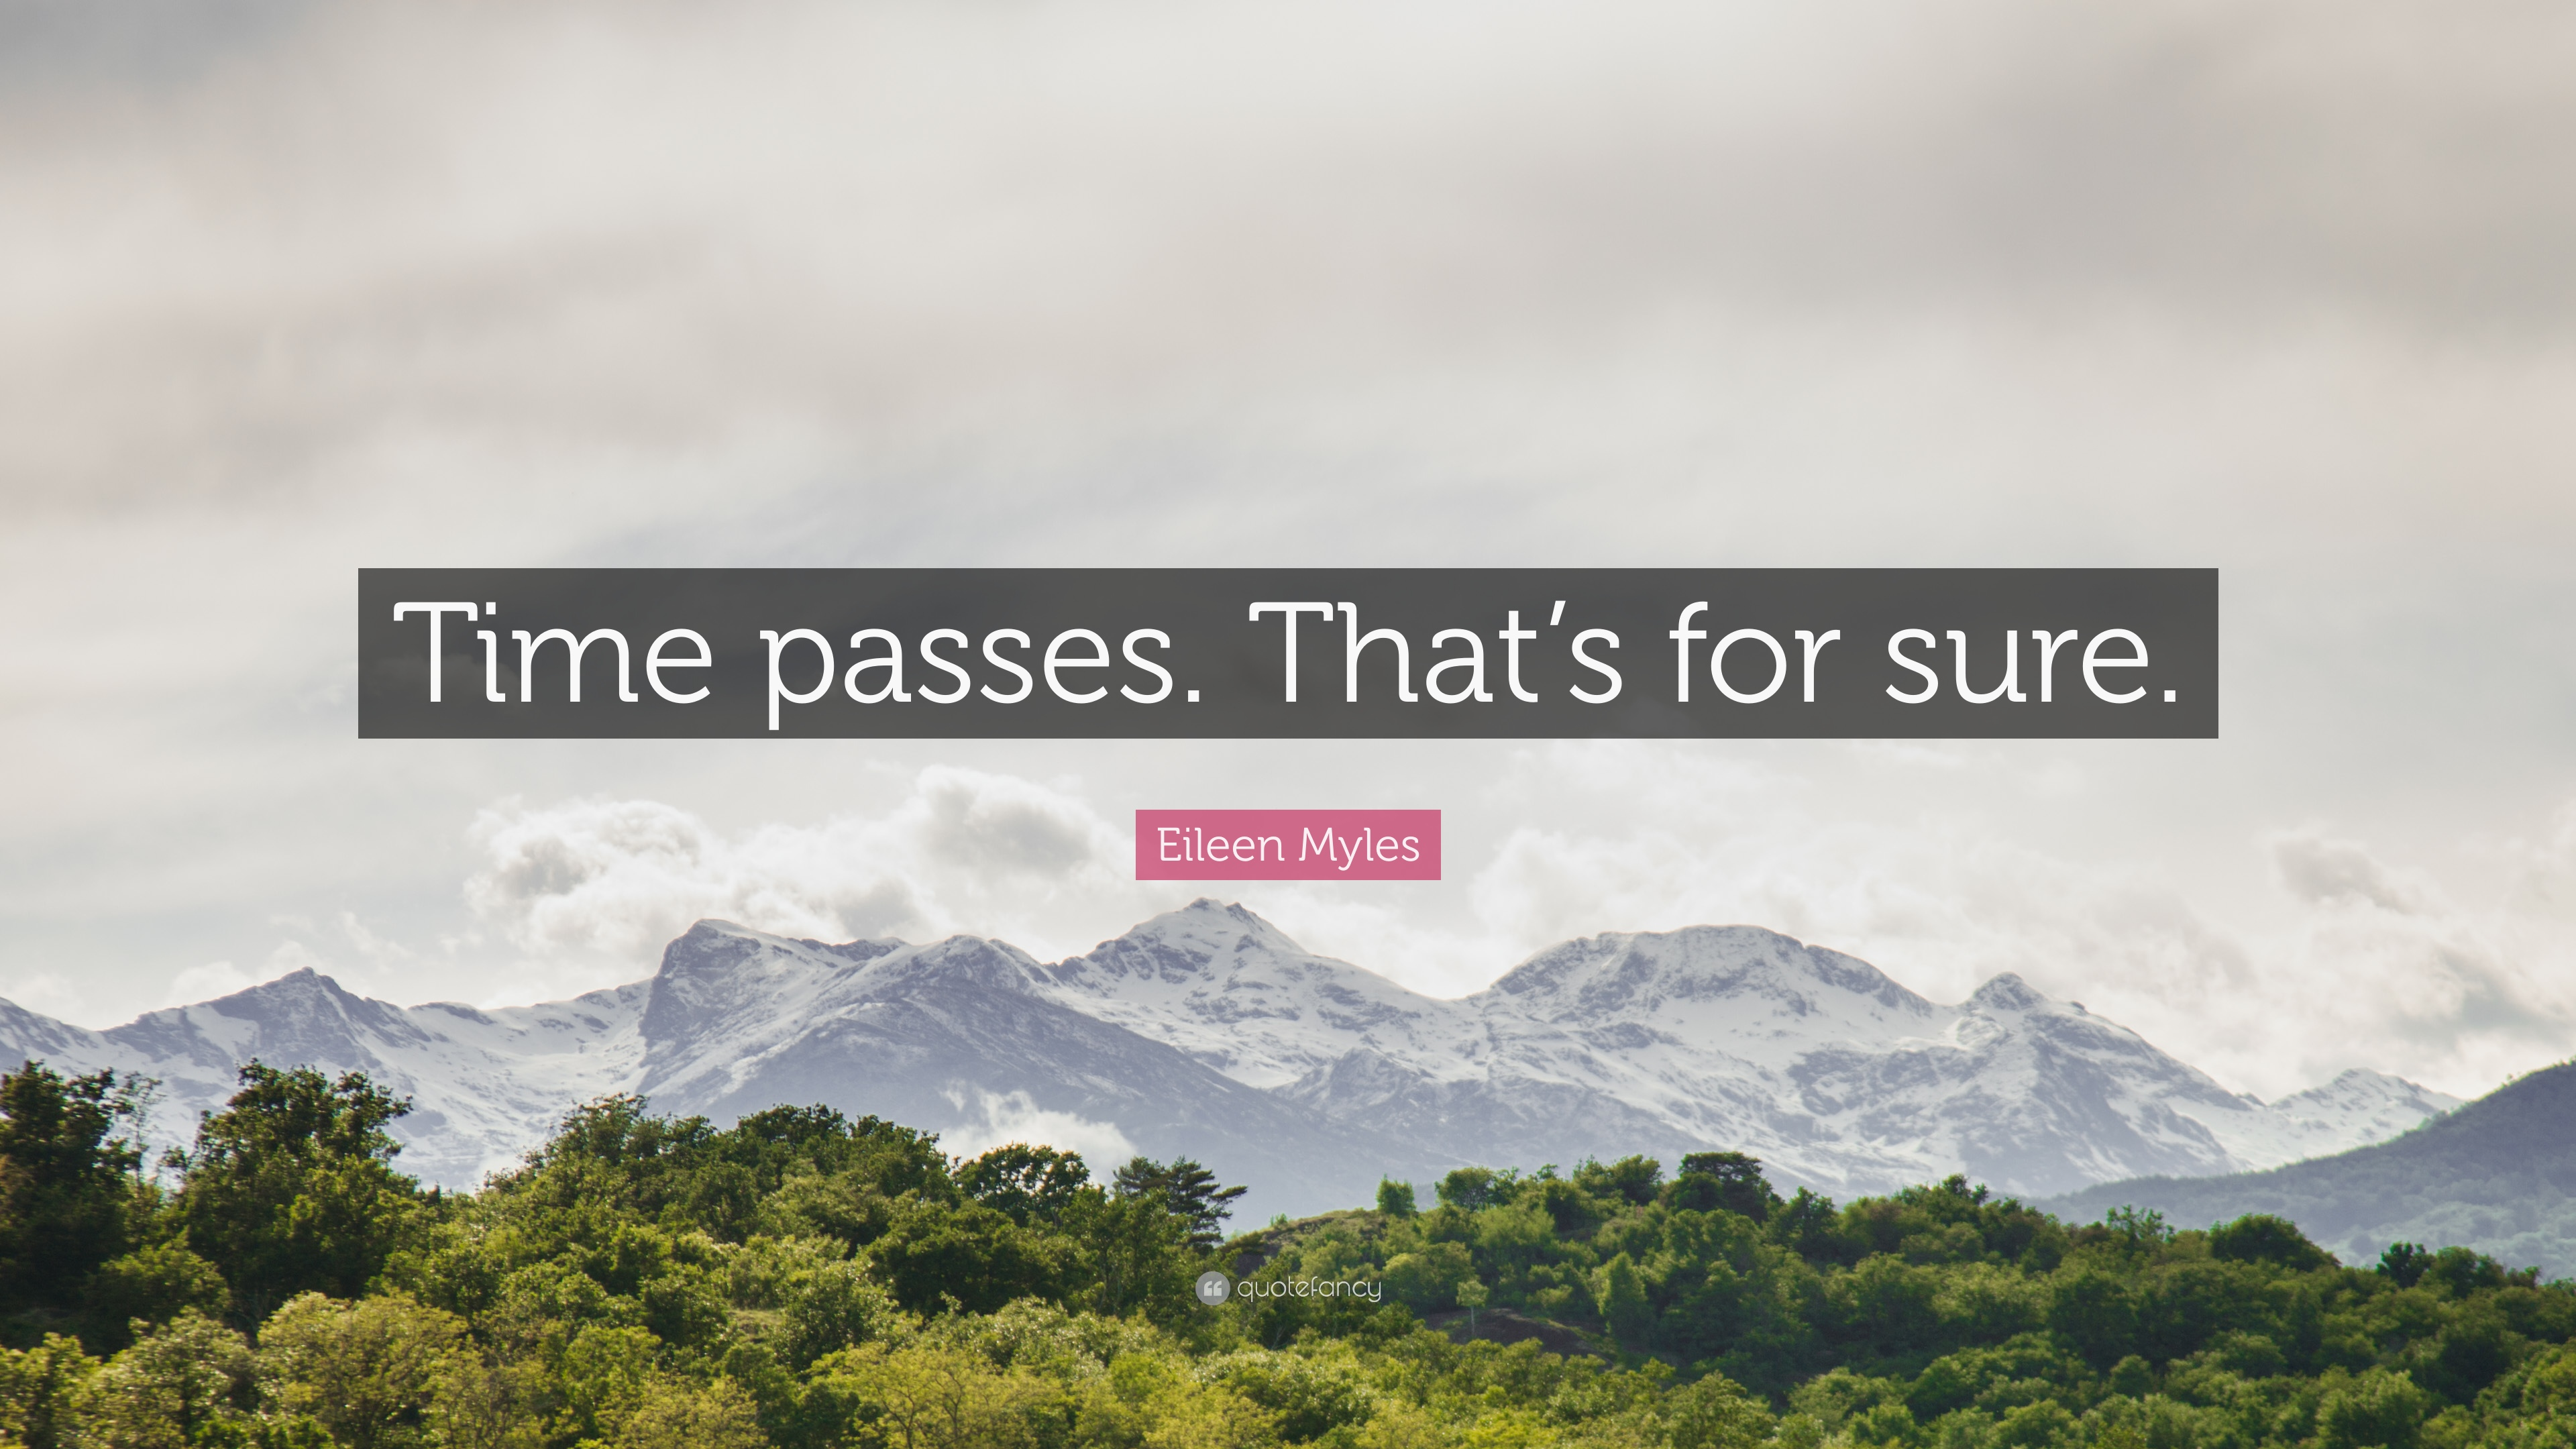 Quotes About Time Passing Quickly Topsimages